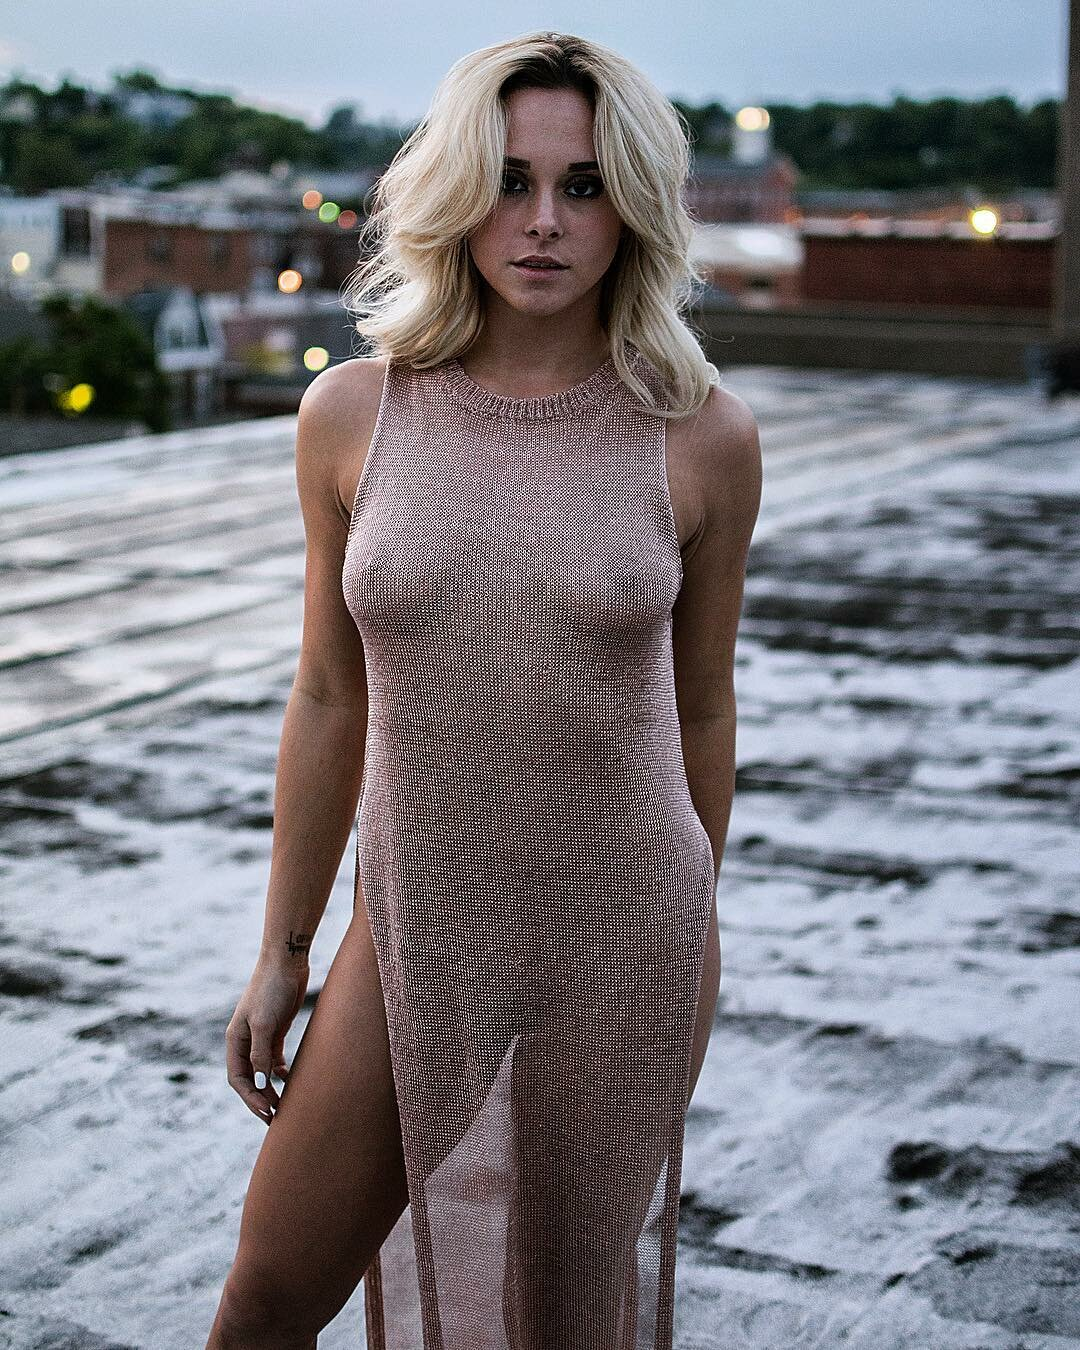 Nude women in see through clothes #6